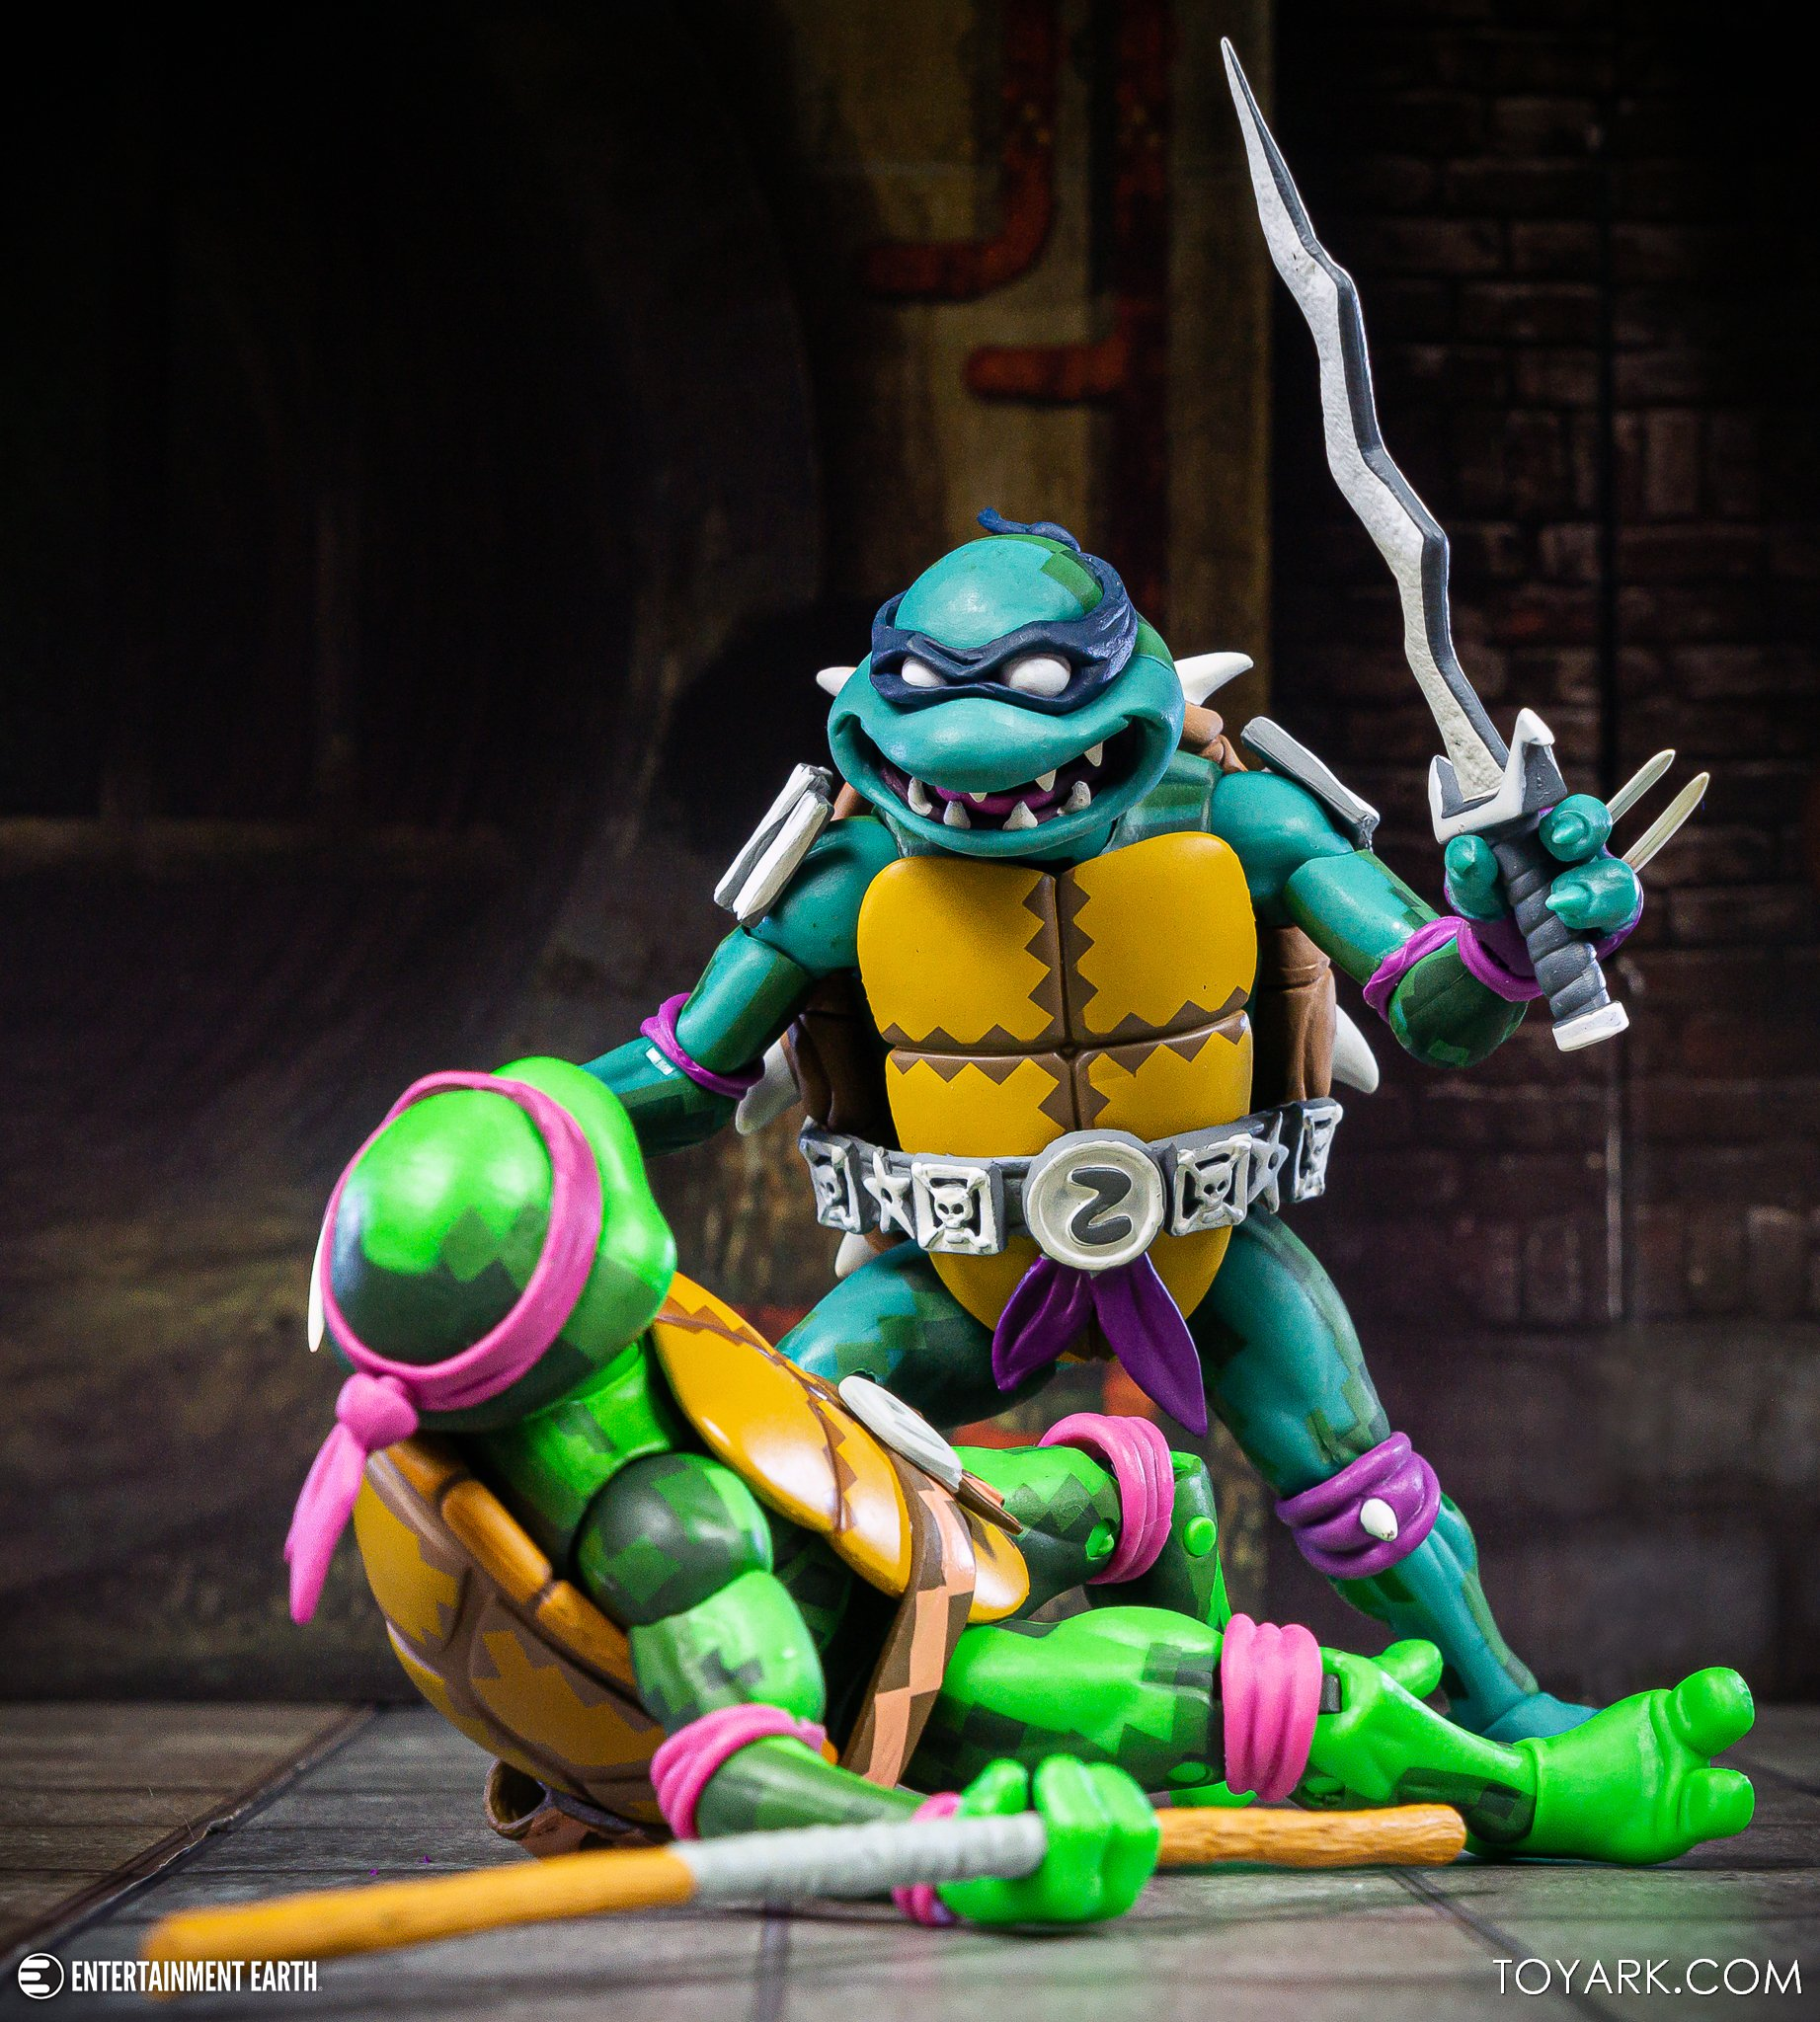 https://news.toyark.com/wp-content/uploads/sites/4/2020/06/NECA-TMNT-Turtles-In-Time-S1-086.jpg